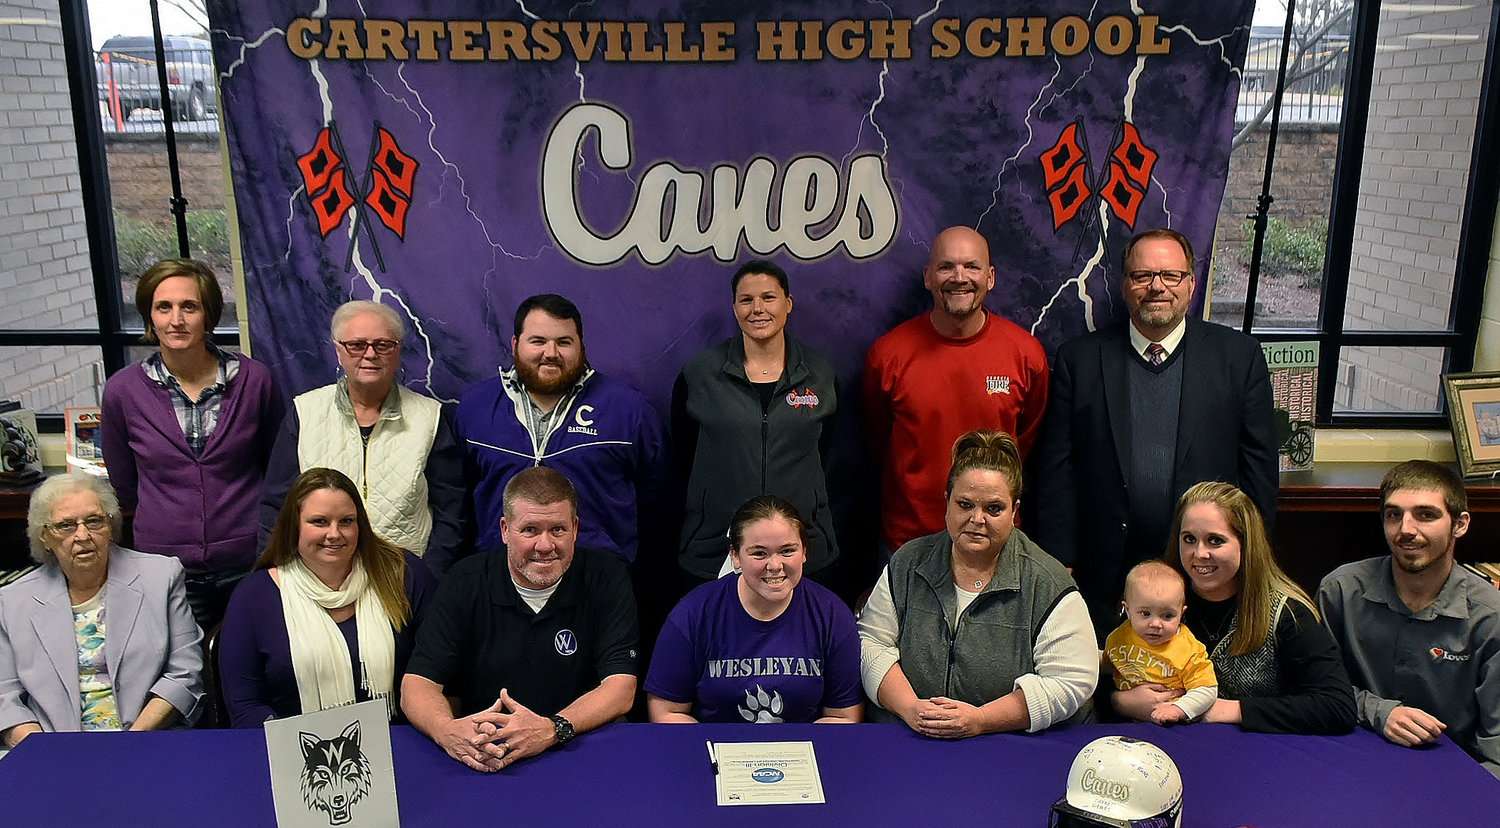 Cartersville High senior Presly Edwards signed to play softball at Wesleyan College in Macon on Dec. 13 in the school's media center. On hand for the signing were, from left, front row: Jean Reeves, grandmother; Tiffany Edwards, stepmother; Shane Edwards, father; Amy Edwards, mother; Campbell Edwards, niece; Peyton Zieminick, sister; Nick Zieminick, brother-in-law; back row, Shelley Tierce, CHS principal; Becky Lowry, aunt; Alex Chastain, assistant softball coach; Shannon Suarez, head softball coach; Evan Johnson, Georgia Fire coach; and Darrell Demastus, CHS assistant principal and athletic director.